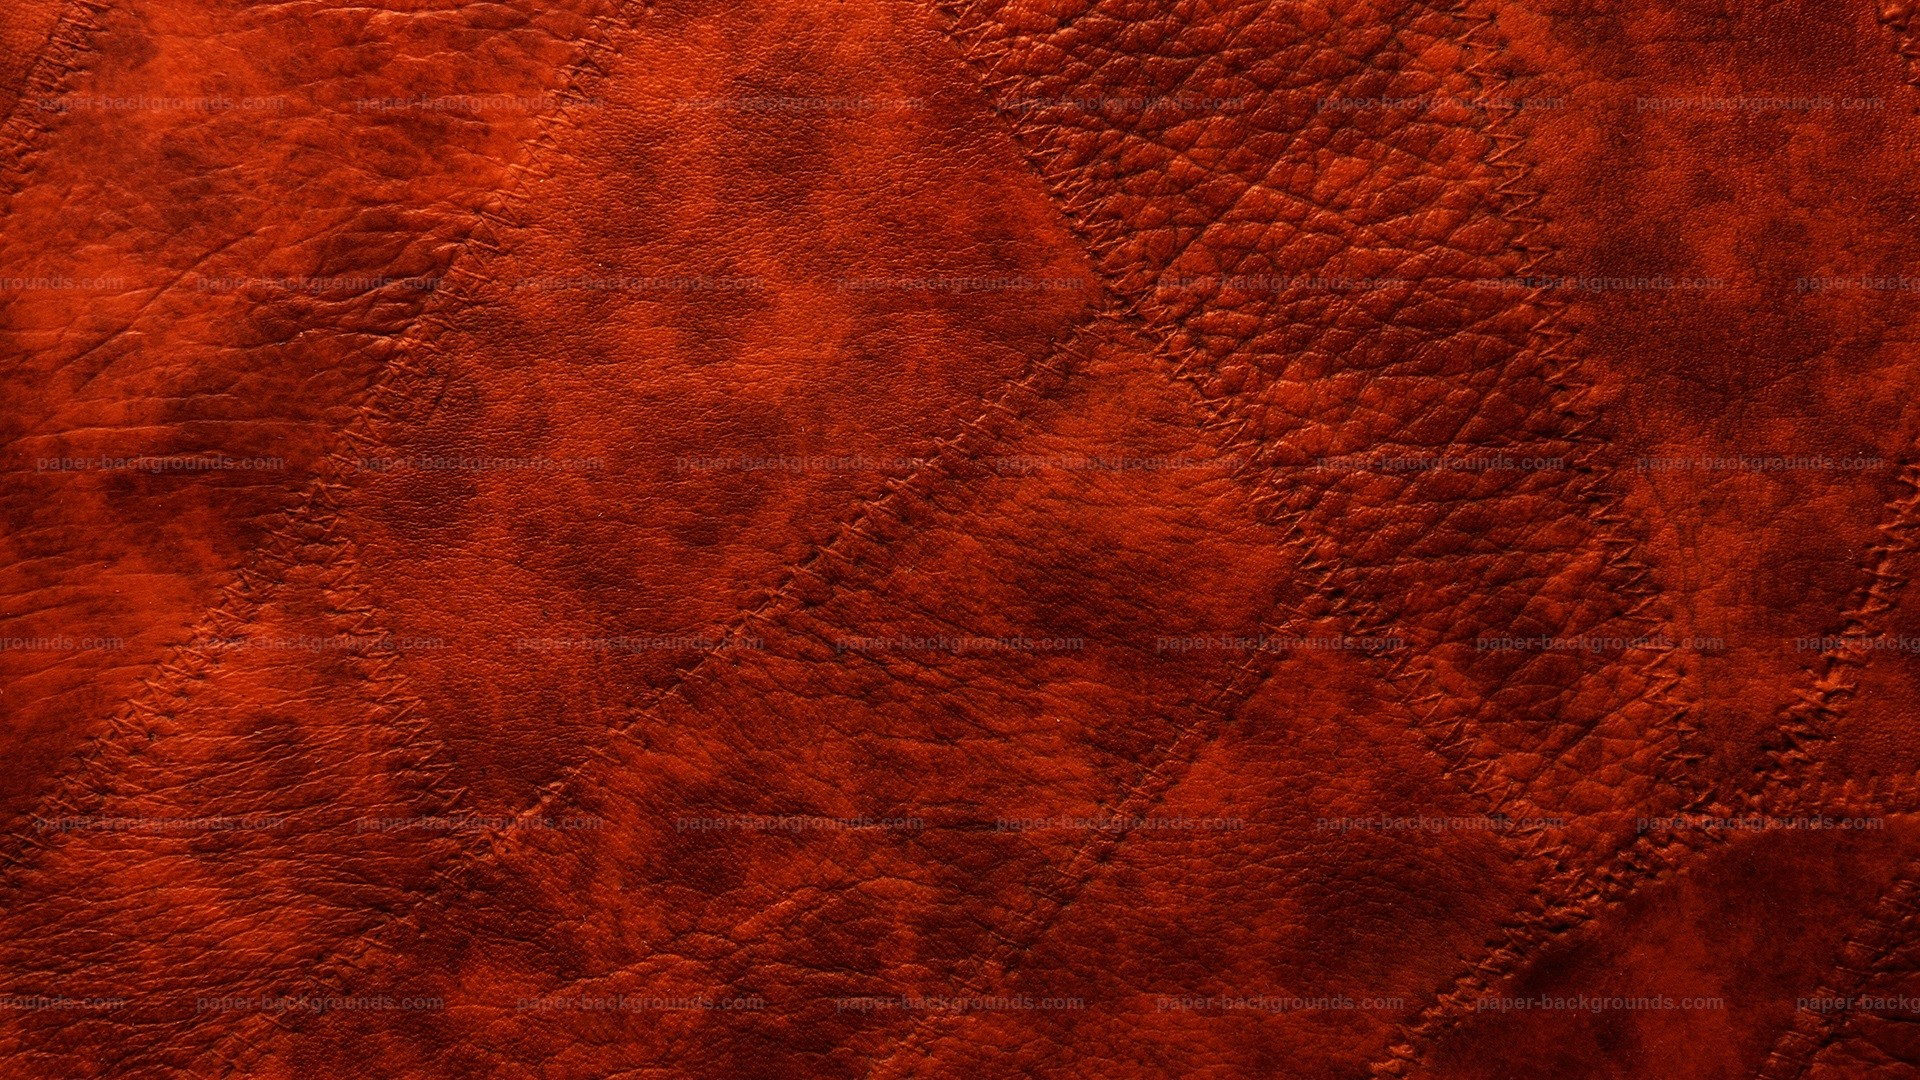 red, background, patches, leather, sewed, wallpaper, textureimages